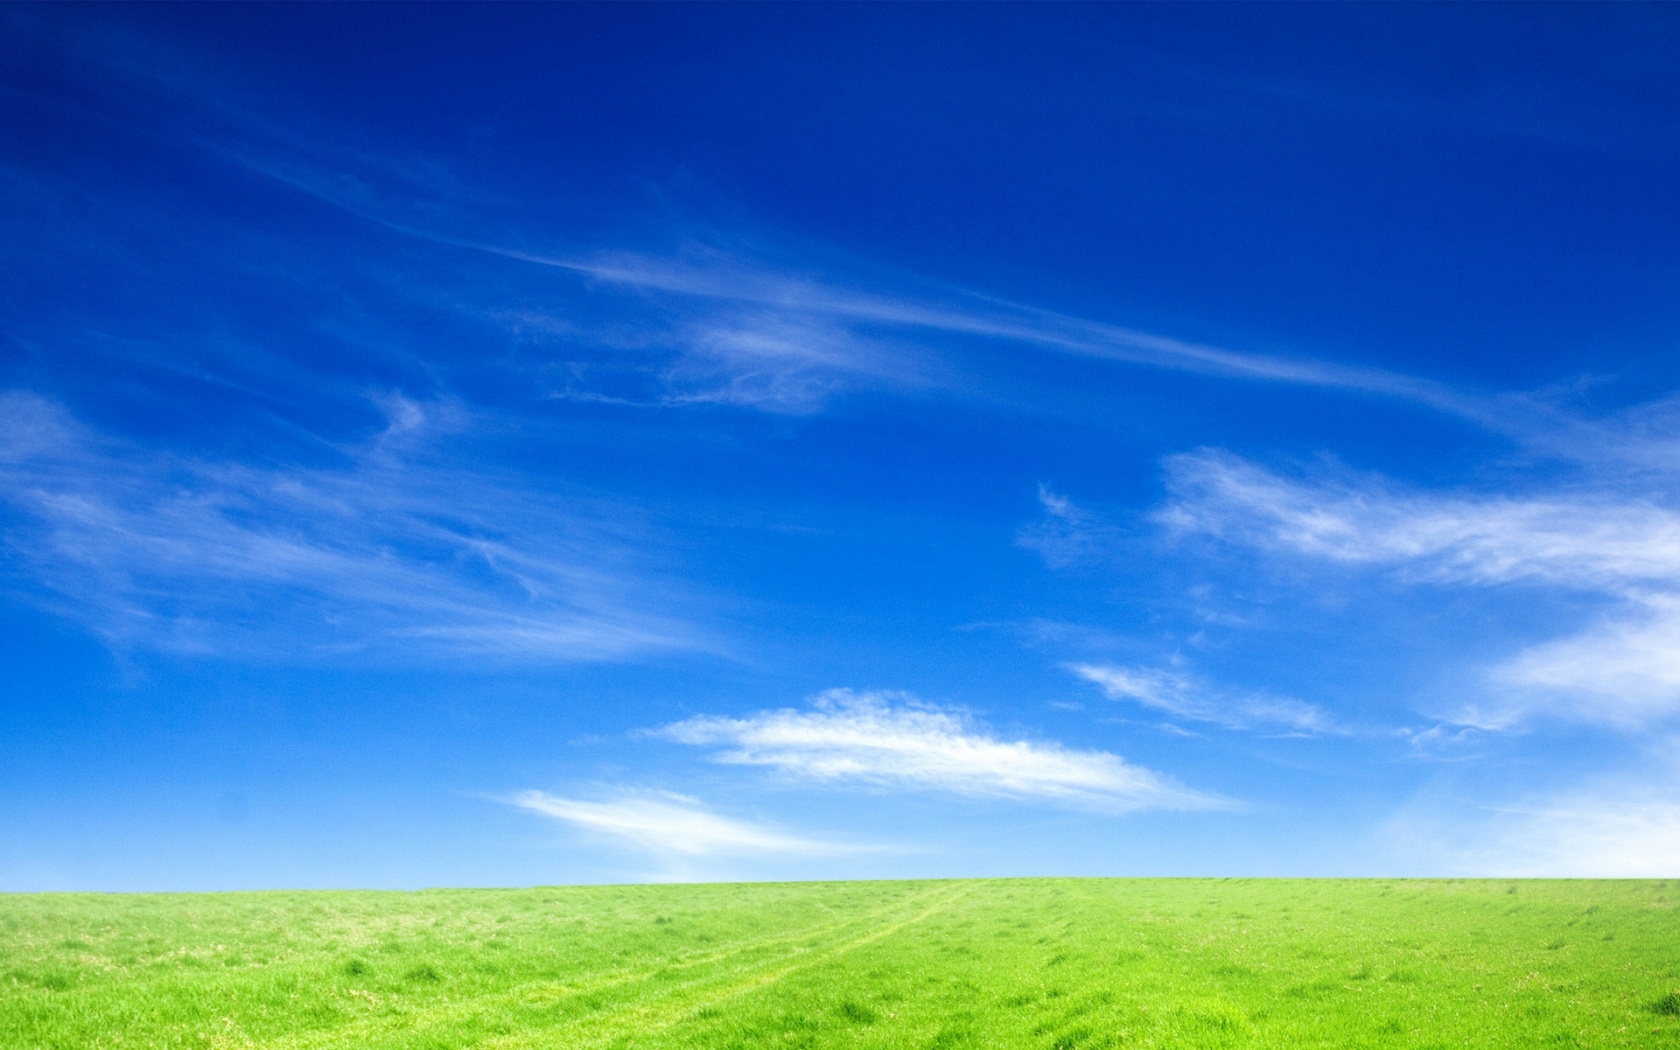 I Am Alone Wallpapers 3d Blue Sky And Green Grass Wallpapers In Jpg Format For Free